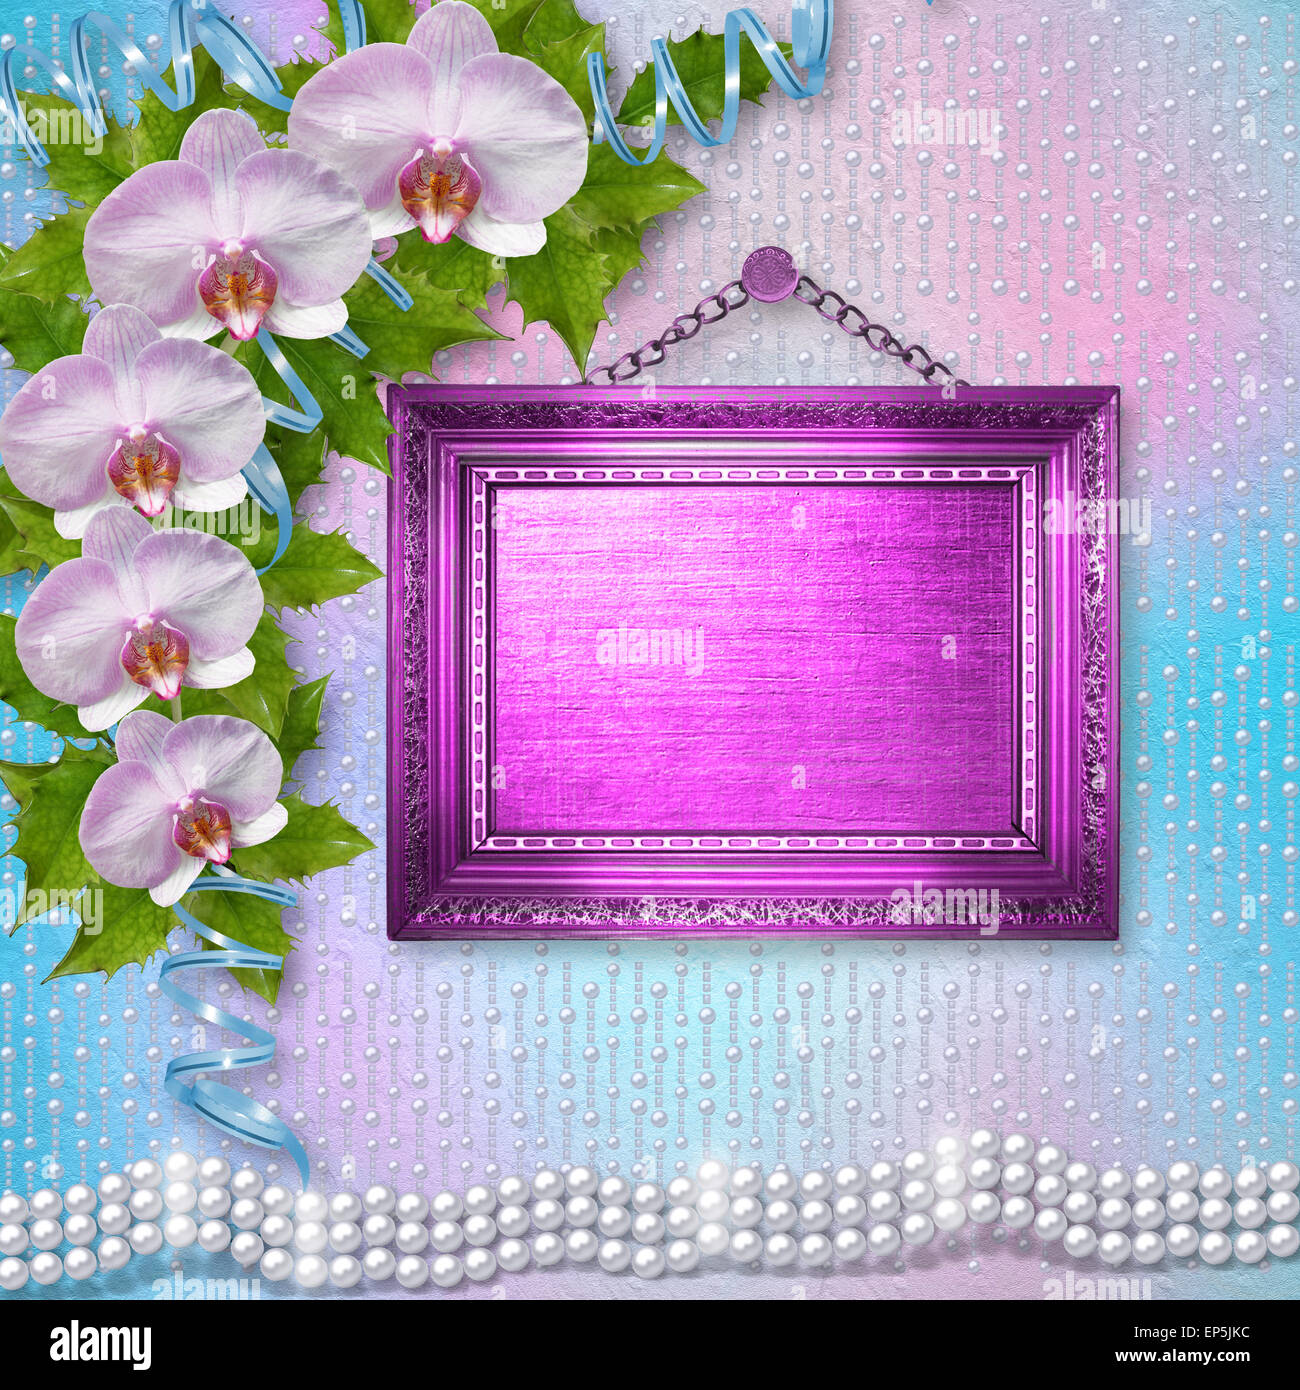 Frames bouquet floral stock photos frames bouquet floral stock wooden frames on the wall with branches of beautiful orchids for greeting card stock image izmirmasajfo